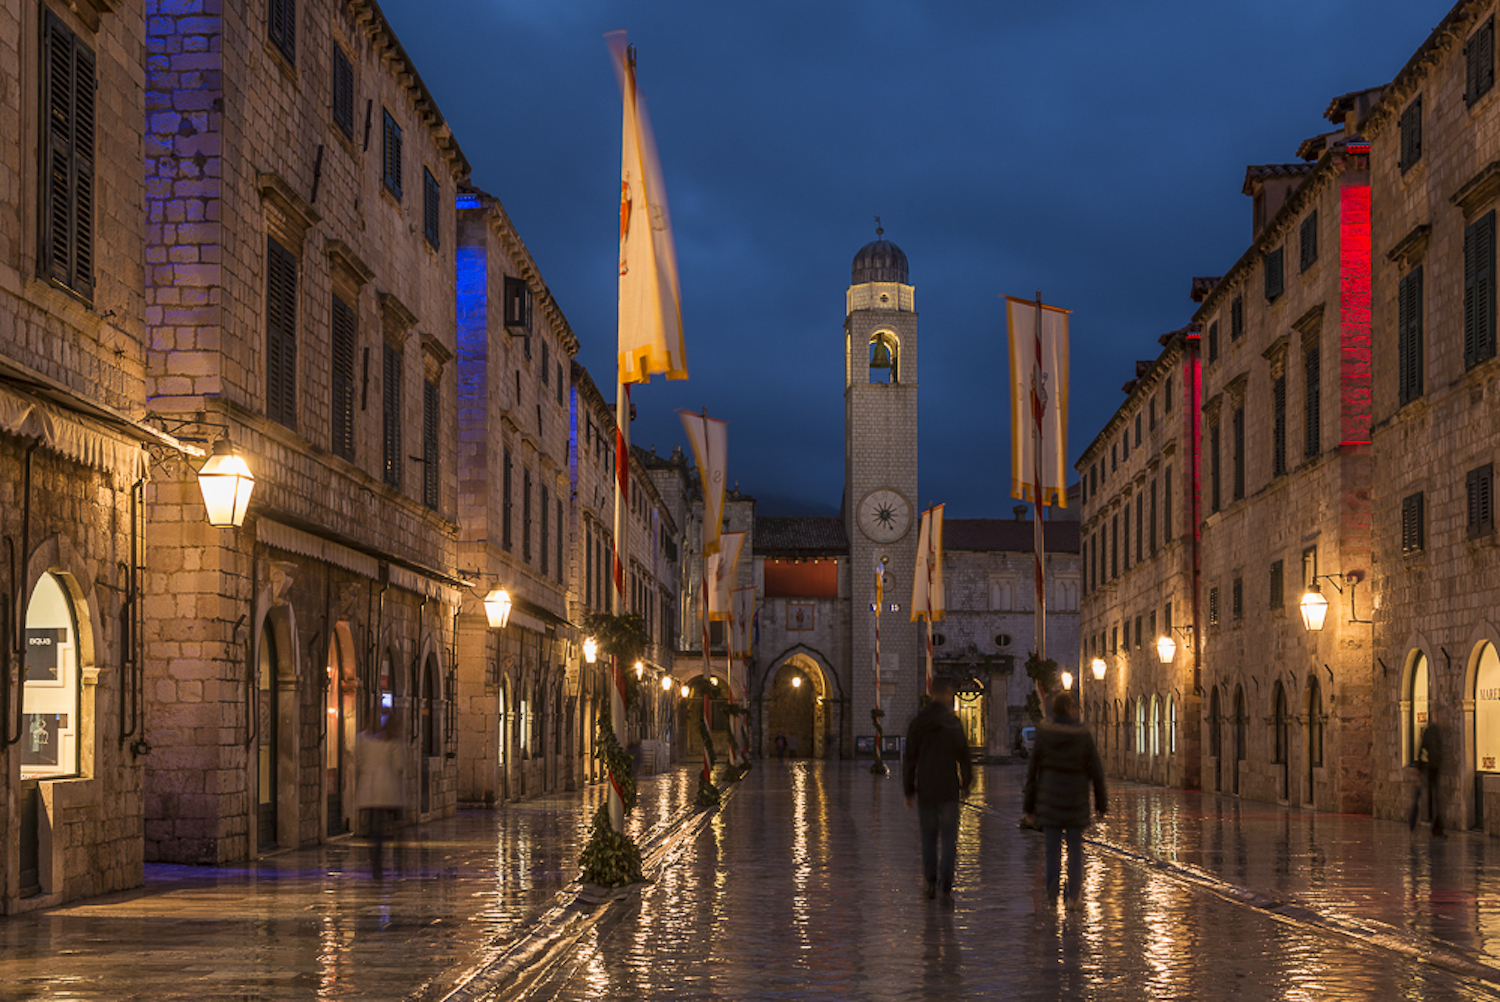 A view of Stradun, the main street in Old Town of Dubrvonik.